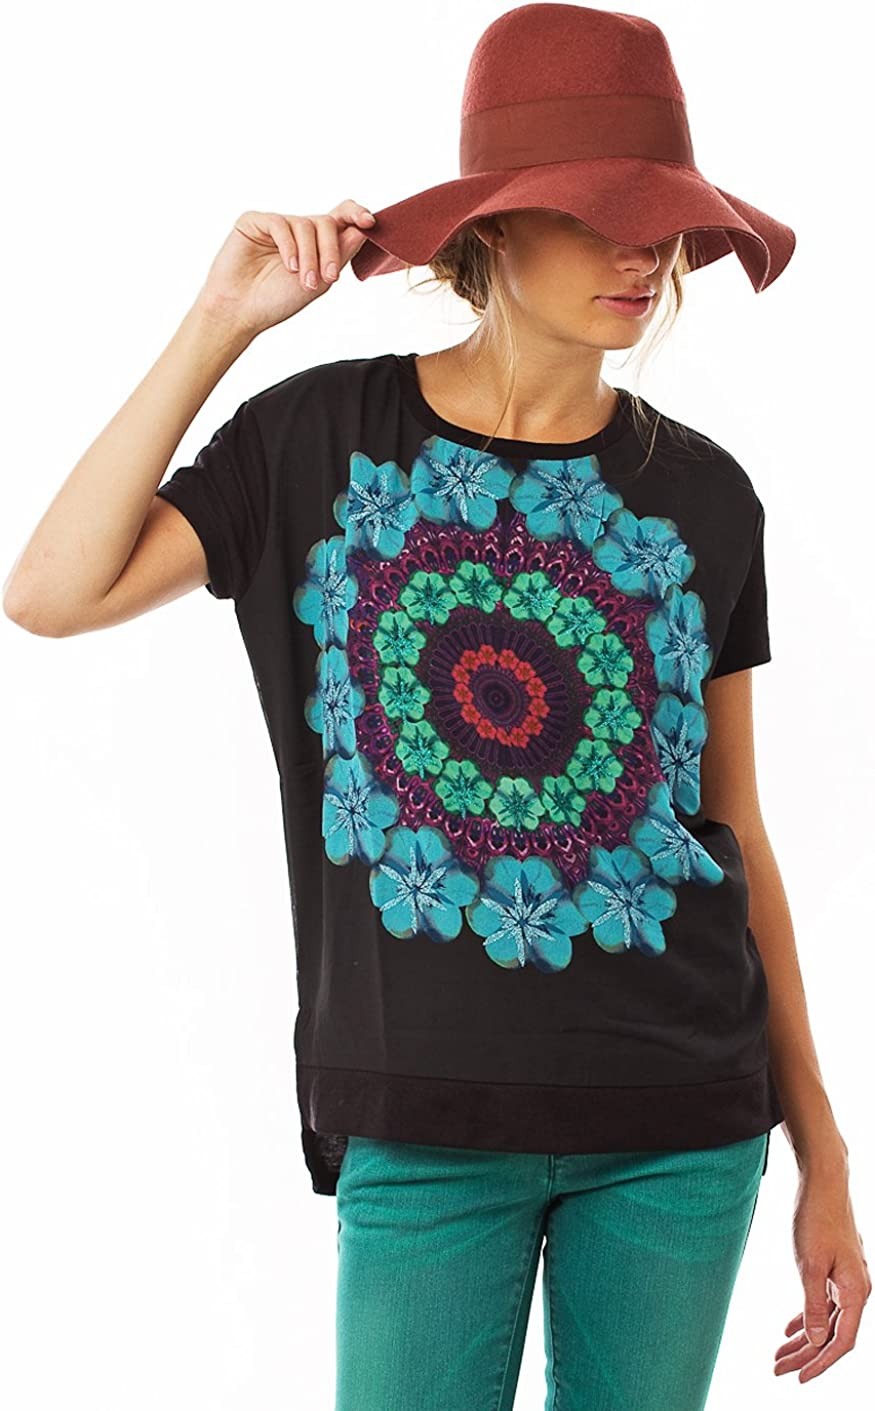 Desigual Womens TS_LUCY Graphic Round Collar Short sleeve